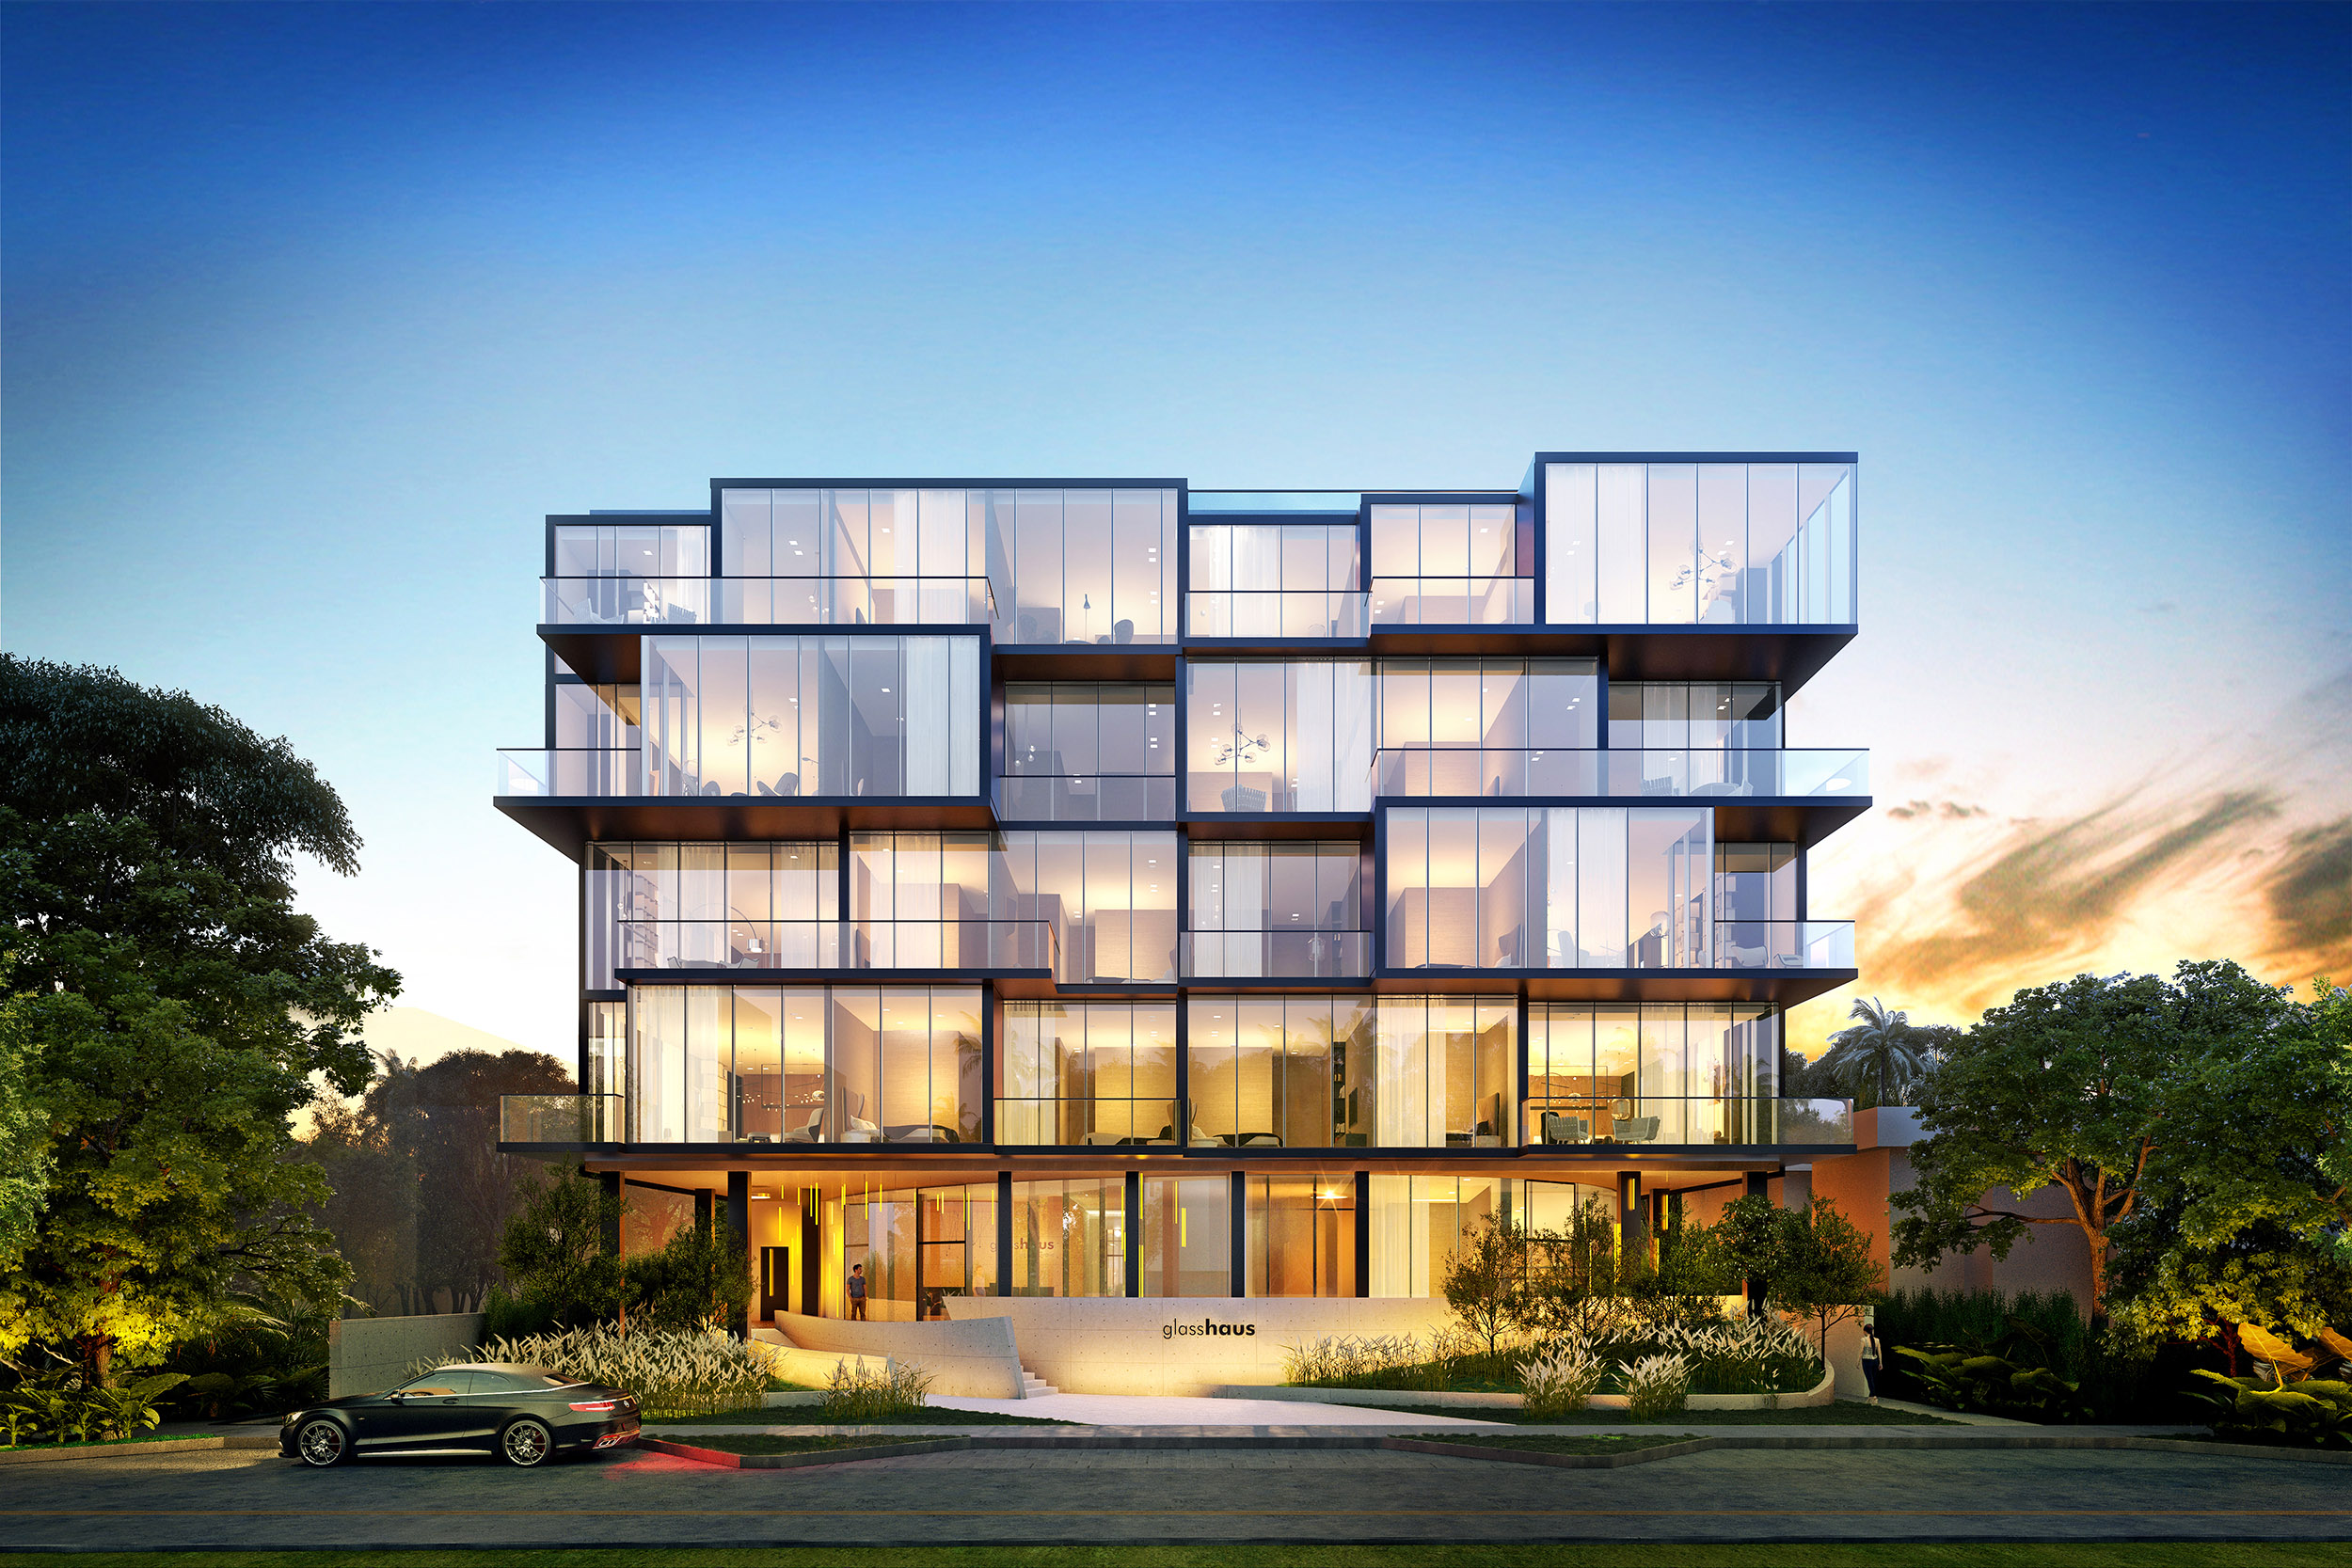 Glasshaus Coconut Grove is Miami's sexiest new boutique condo